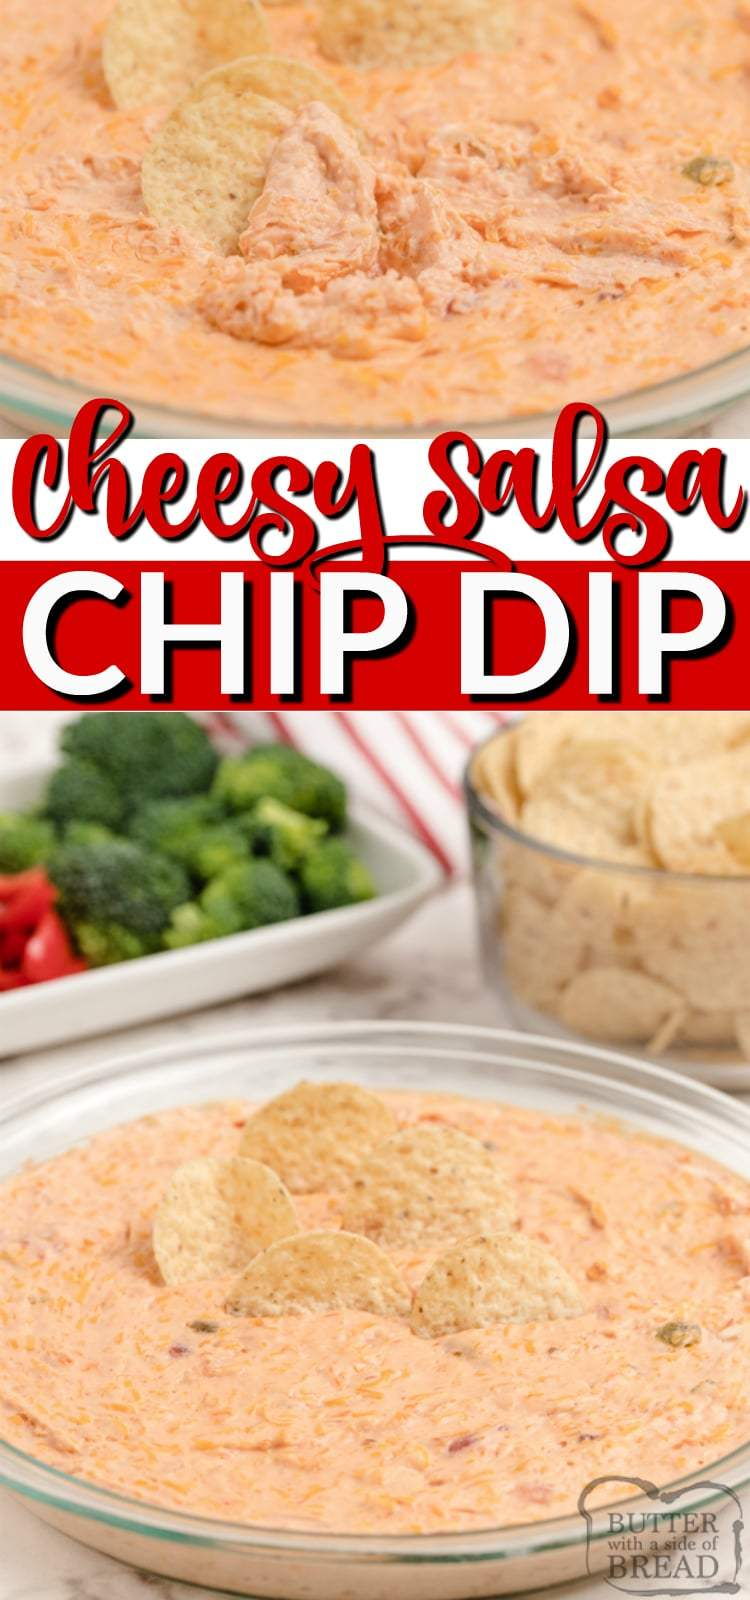 Cheesy Salsa Dip made with cream cheese, salsa, sour cream and cheddar cheese. This cream cheese salsa dip is baked and served warm with chips for an easy appetizer everyone loves!